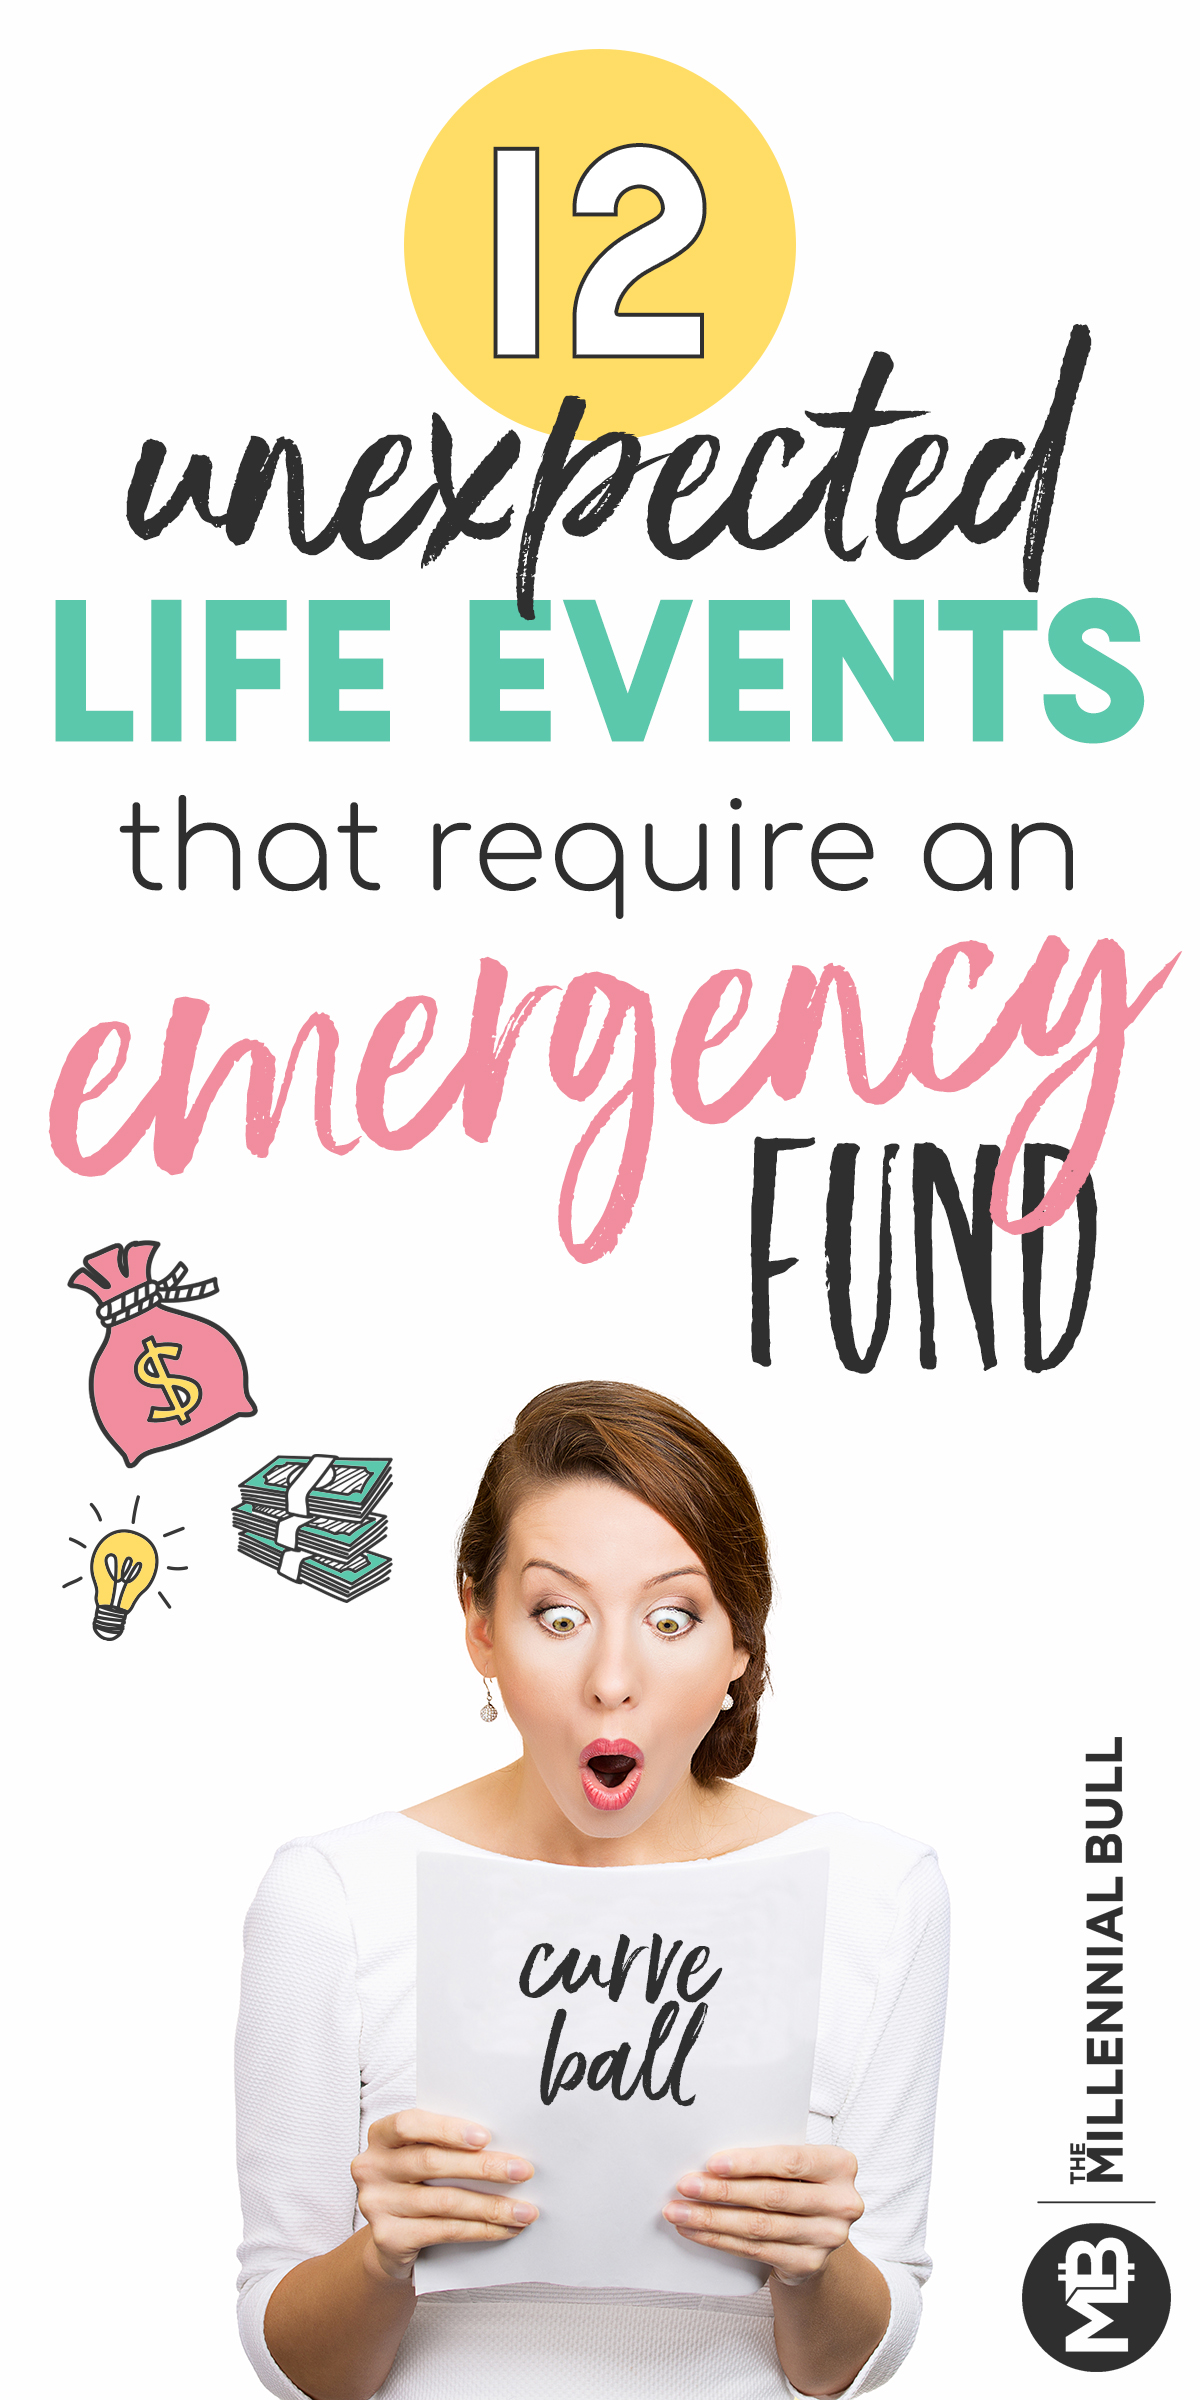 12 unexpected life events that require an emergency fund. When life throws you curve balls, lean on your savings account to get you through! Putting aside money for emergencies is the best way to avoid financial strife! #emergencyfund #savemoney #personalfinance #moneytips